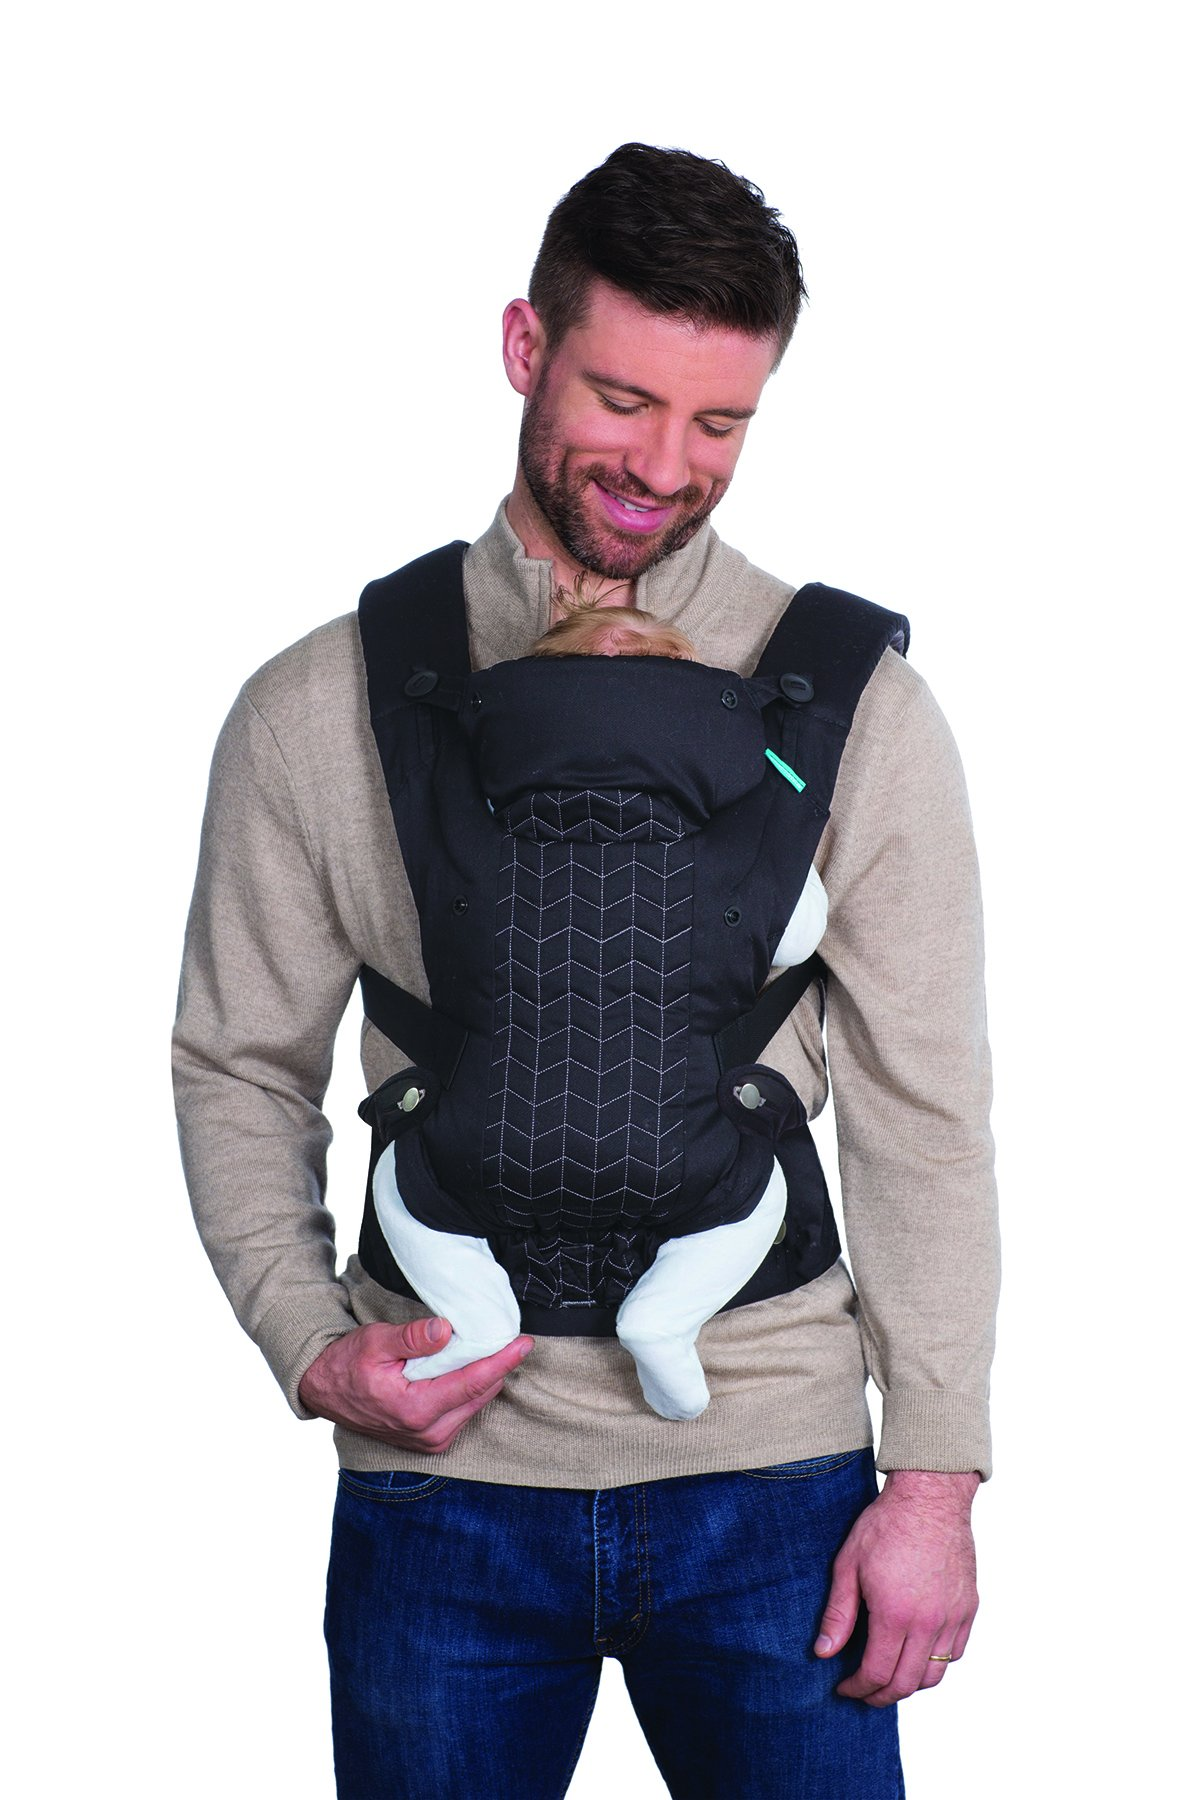 Infantino Upscale Carrier, Black, One Size Infantino Fully safety tested 4 way carrier Facing in newborn & m position 3